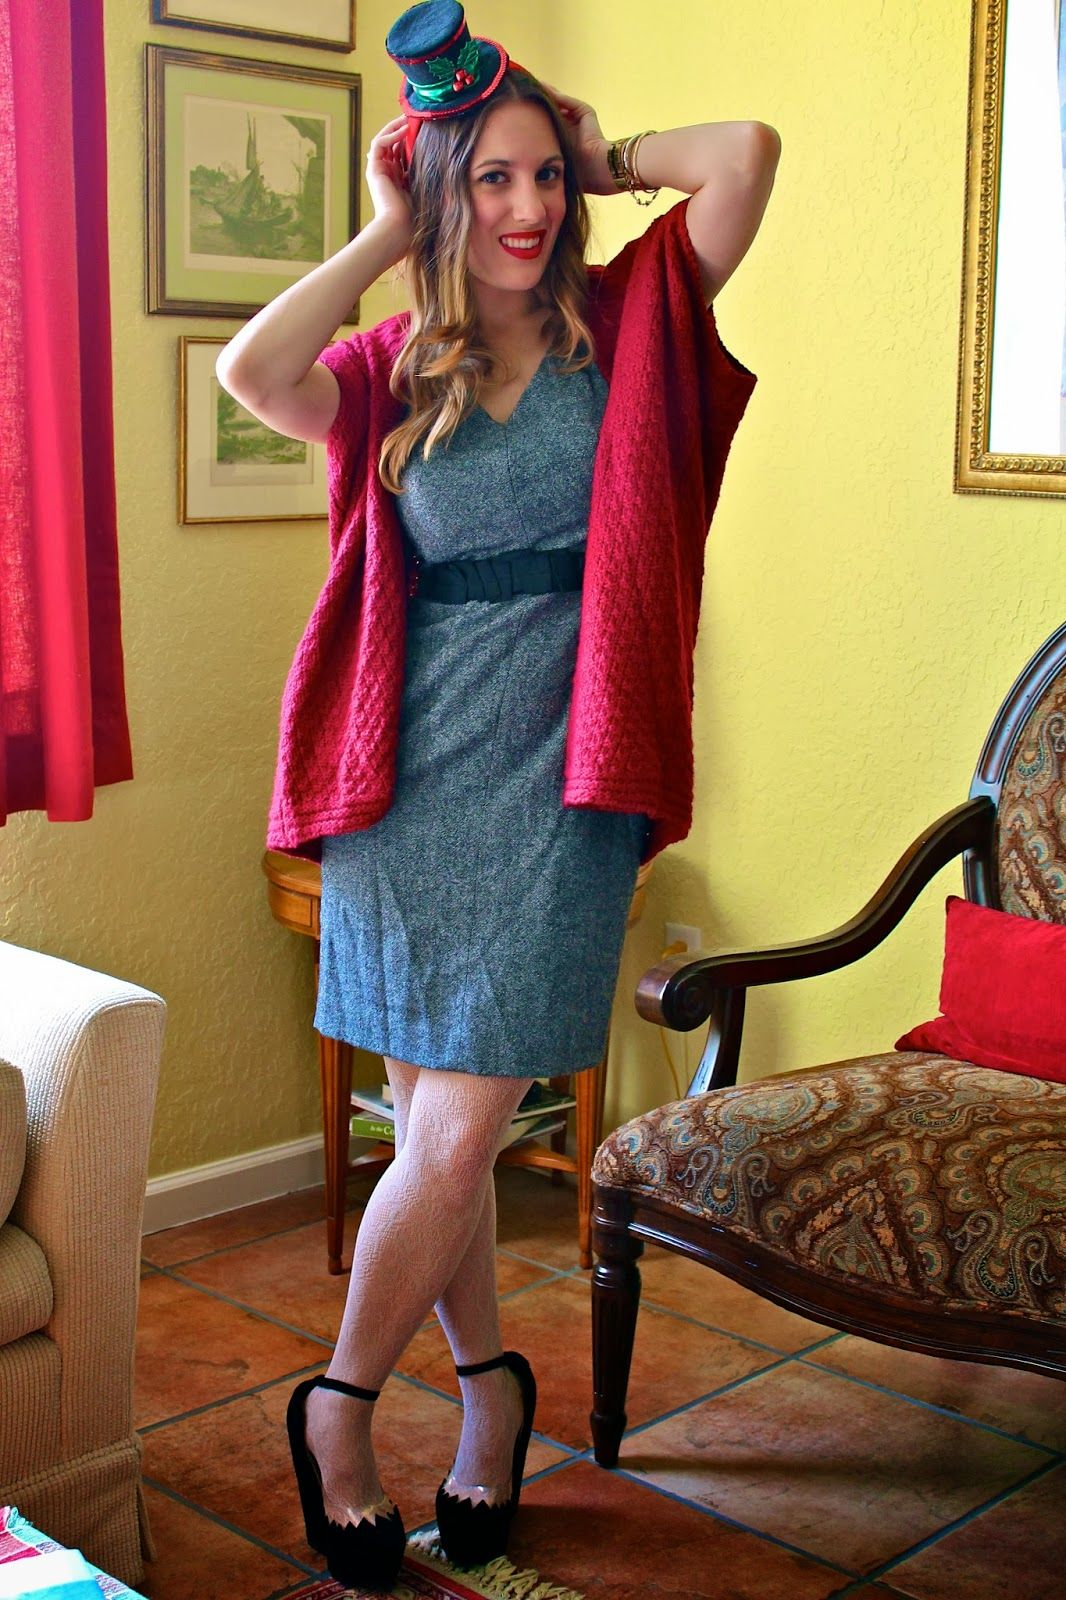 4a173d4b7a54 A classic holiday party look. Red is a fail-proof way to add some festive  color.